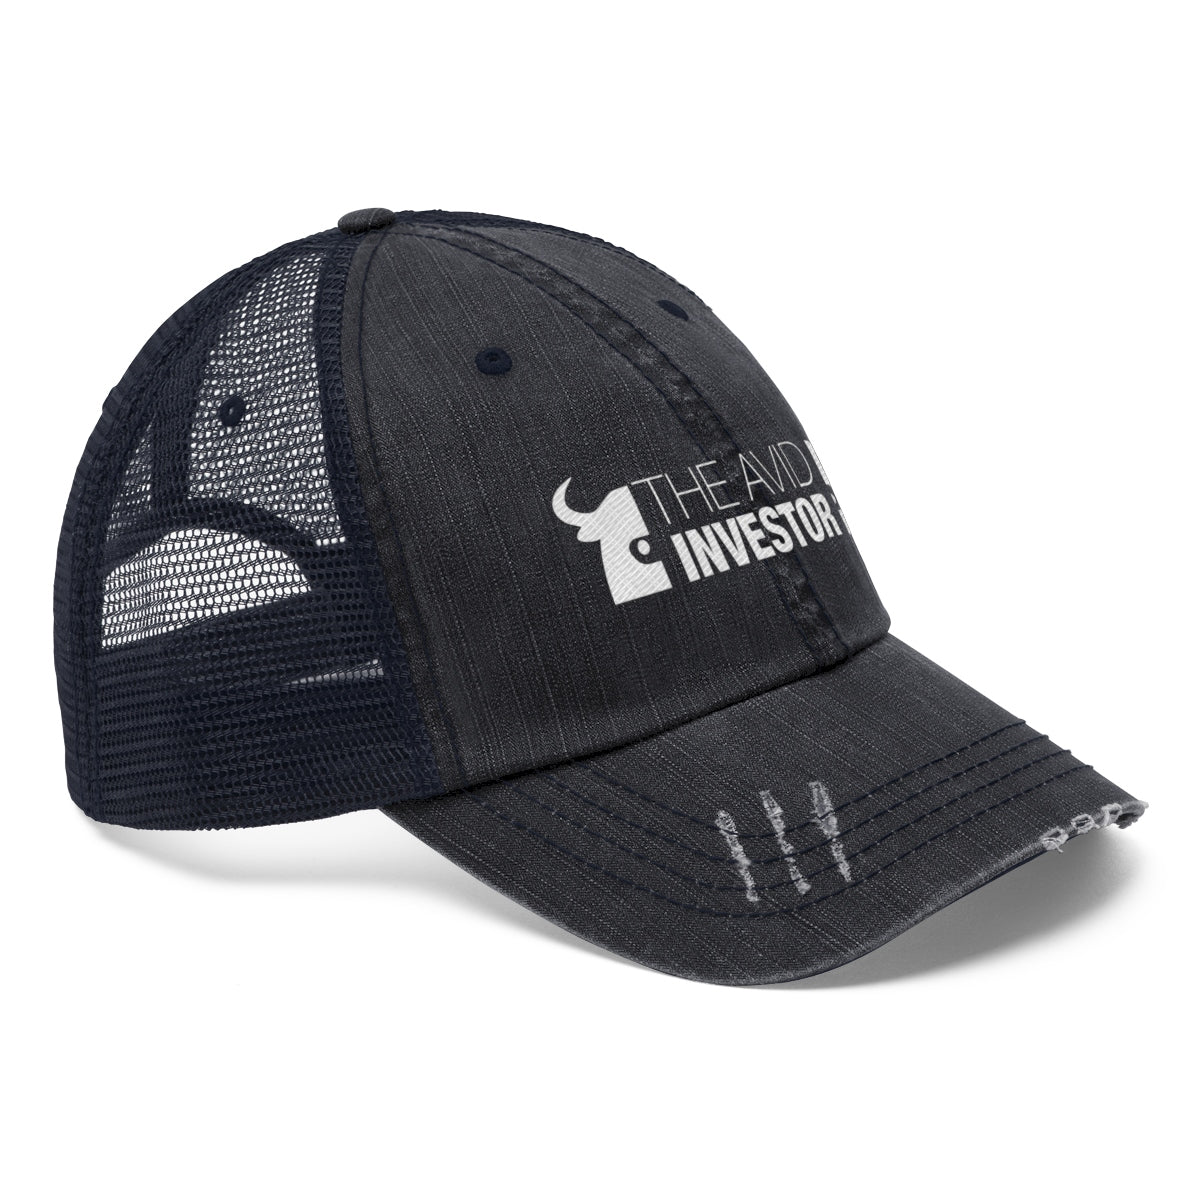 Official Avid Investor - Trucker Hat